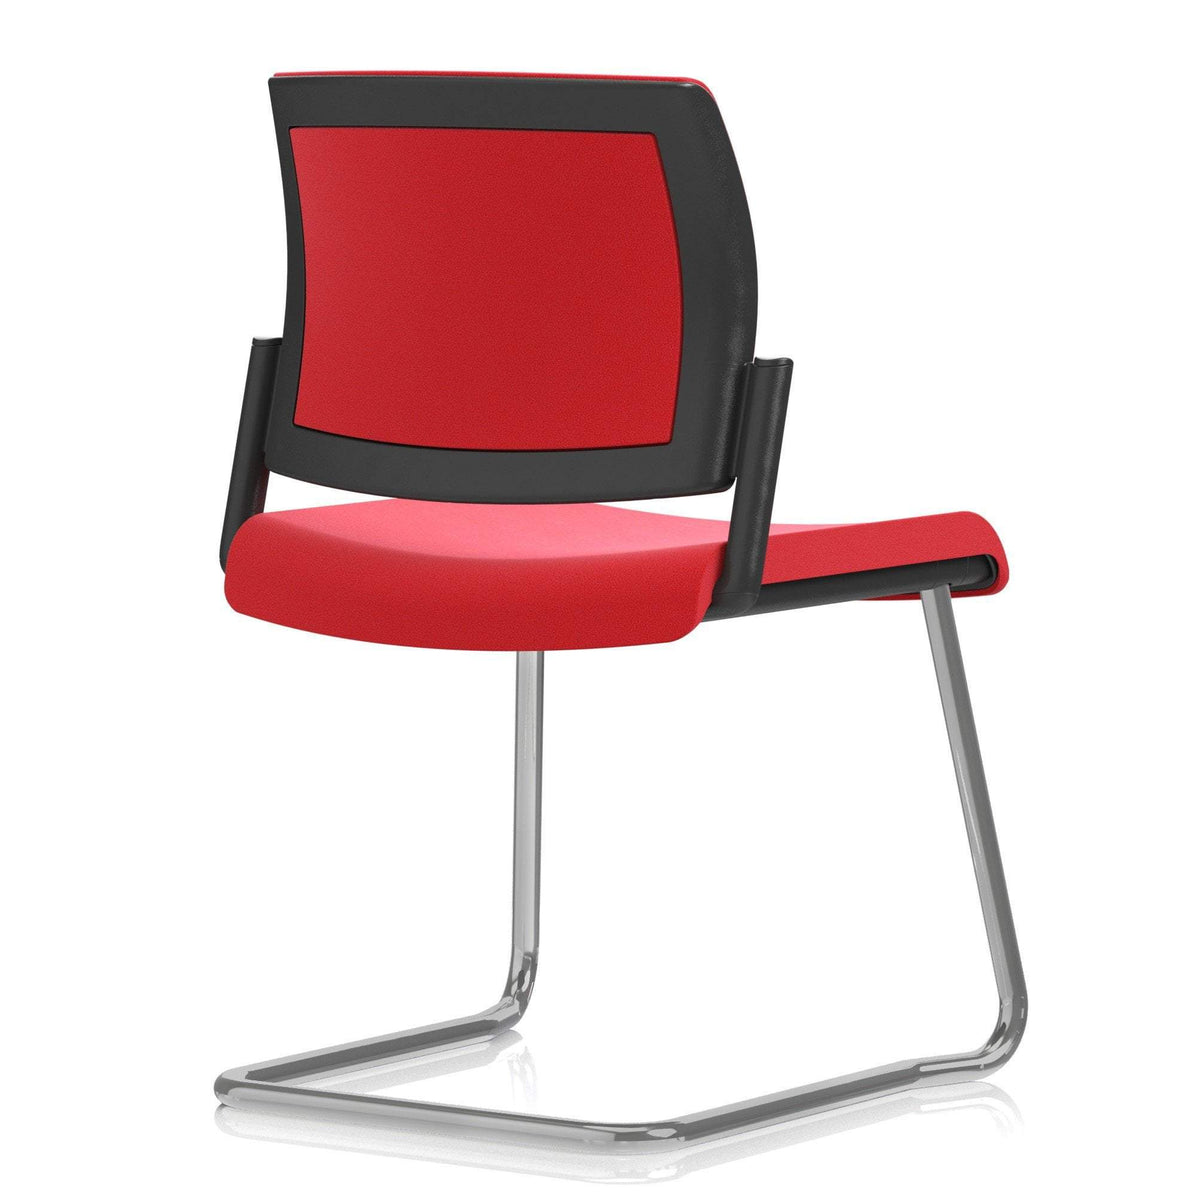 conference chair Cantilever Frame / No Arms Kindle Conference Chair Cantilever Frame / No Arms